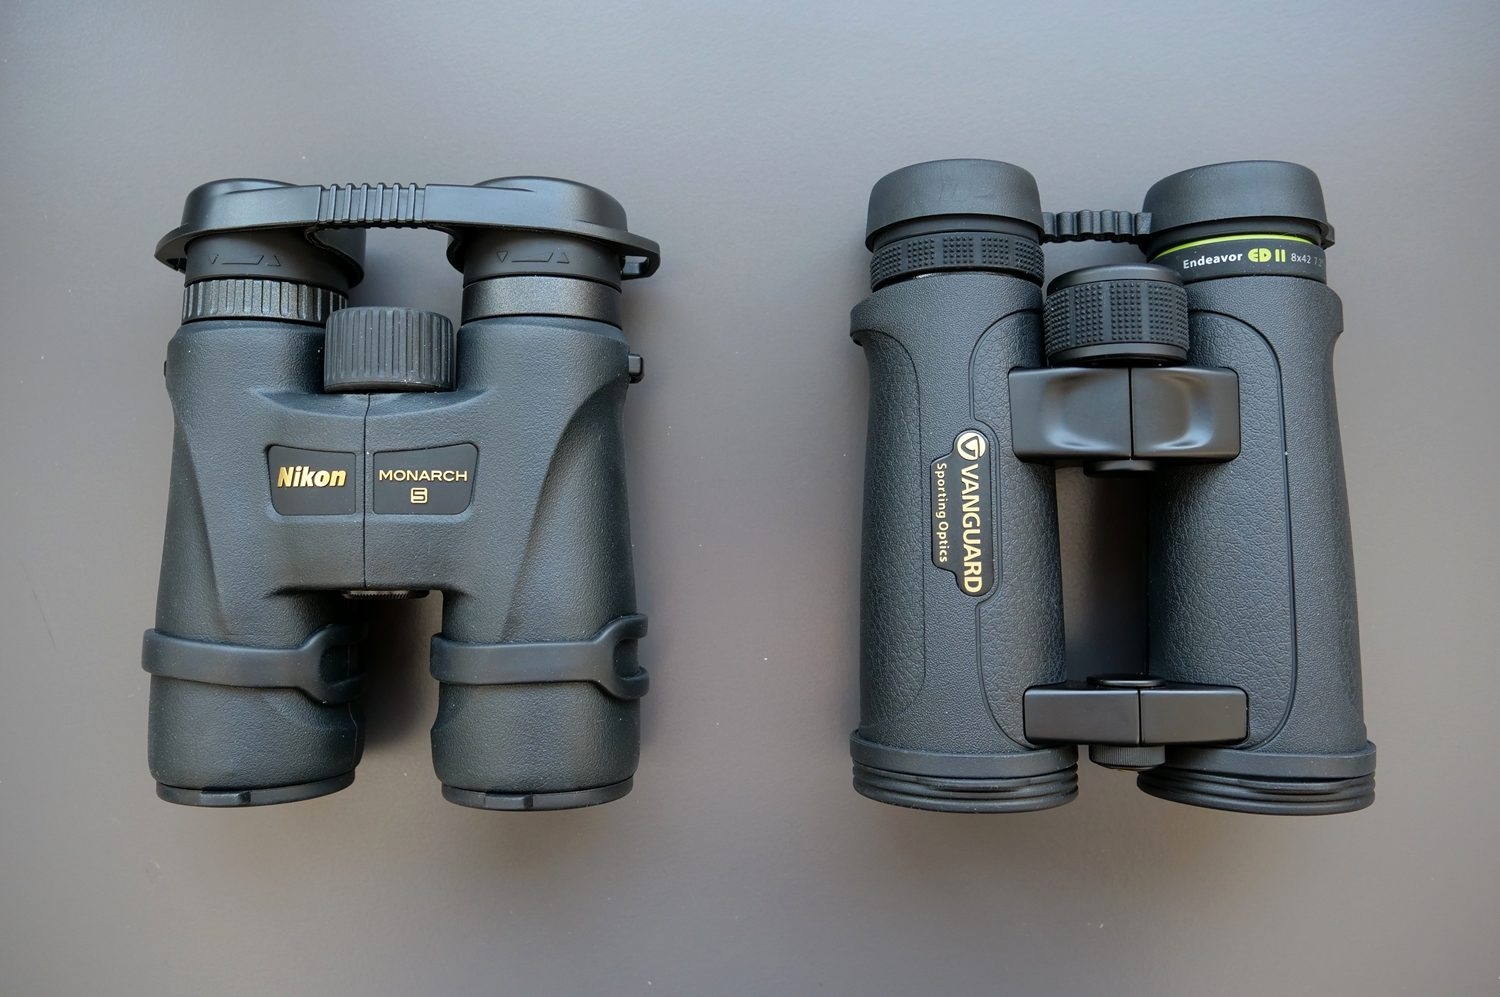 Nikon Monarch 5 8×42 And Vanguard Endeavor ED II 8×42